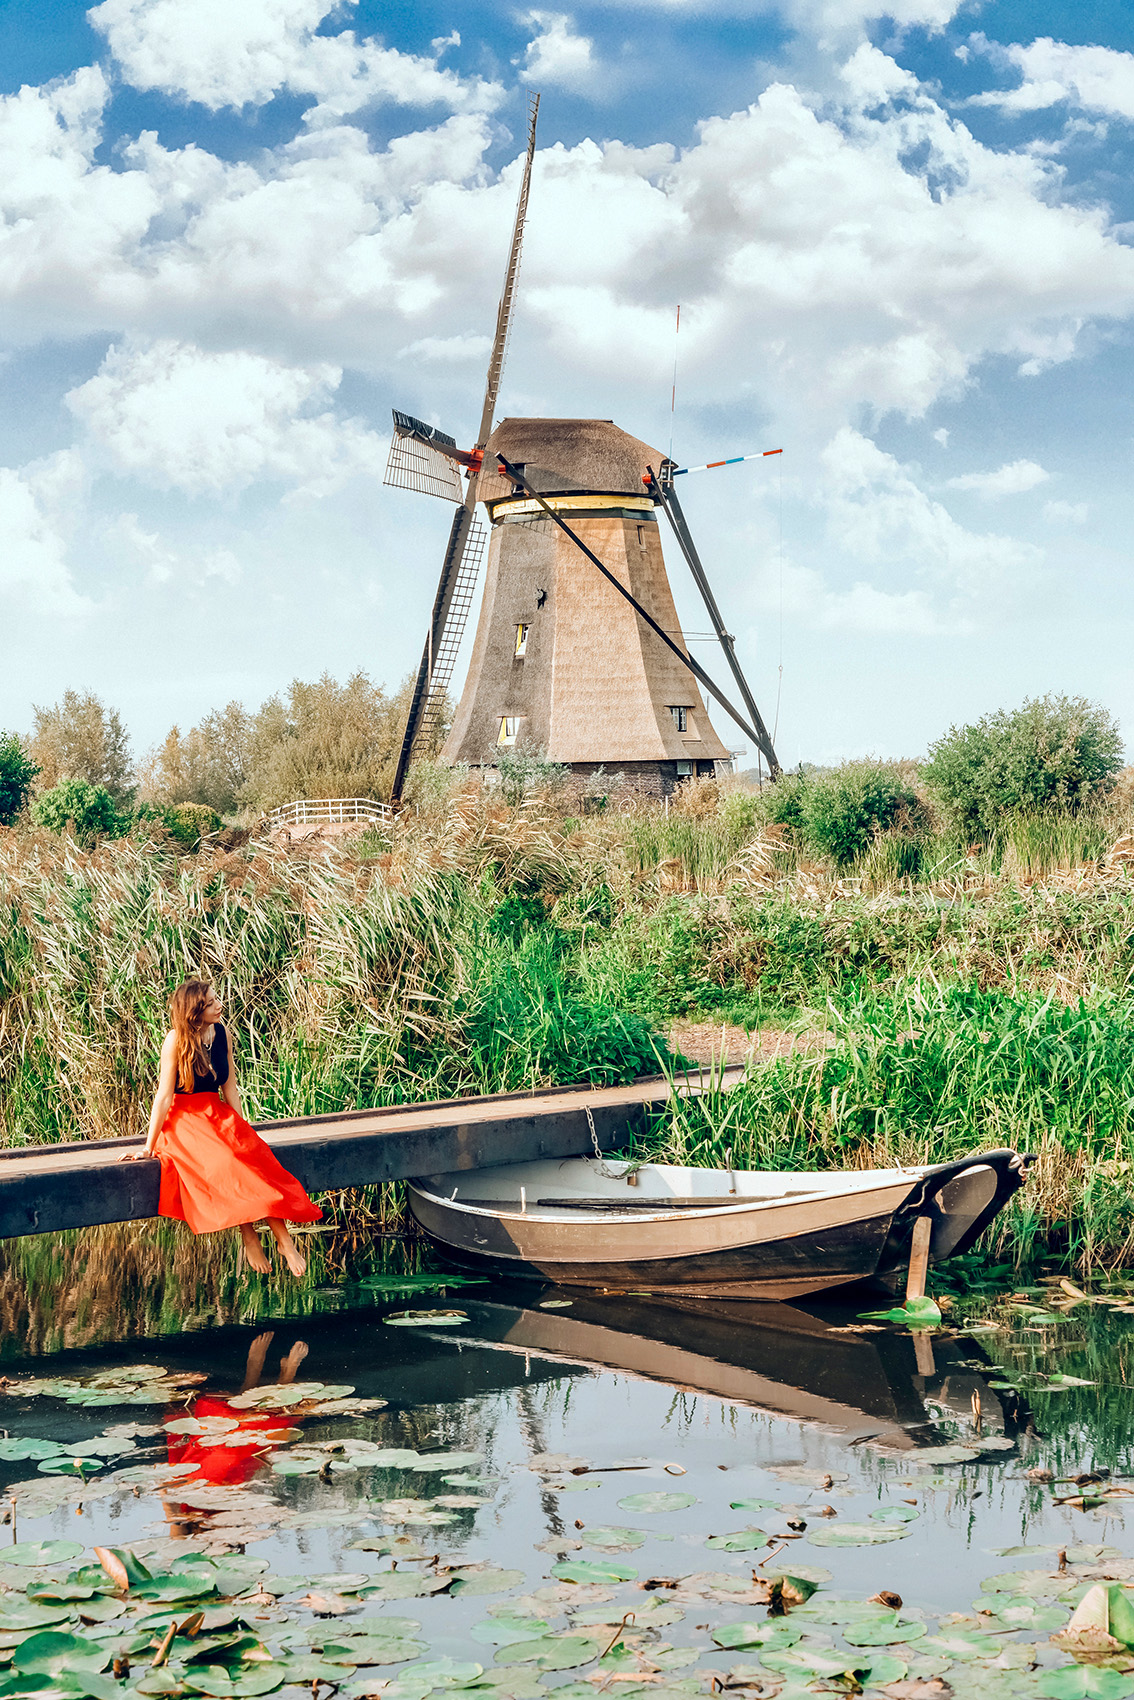 45 The Netherlands you do not expect! Discovering the most authentic places.